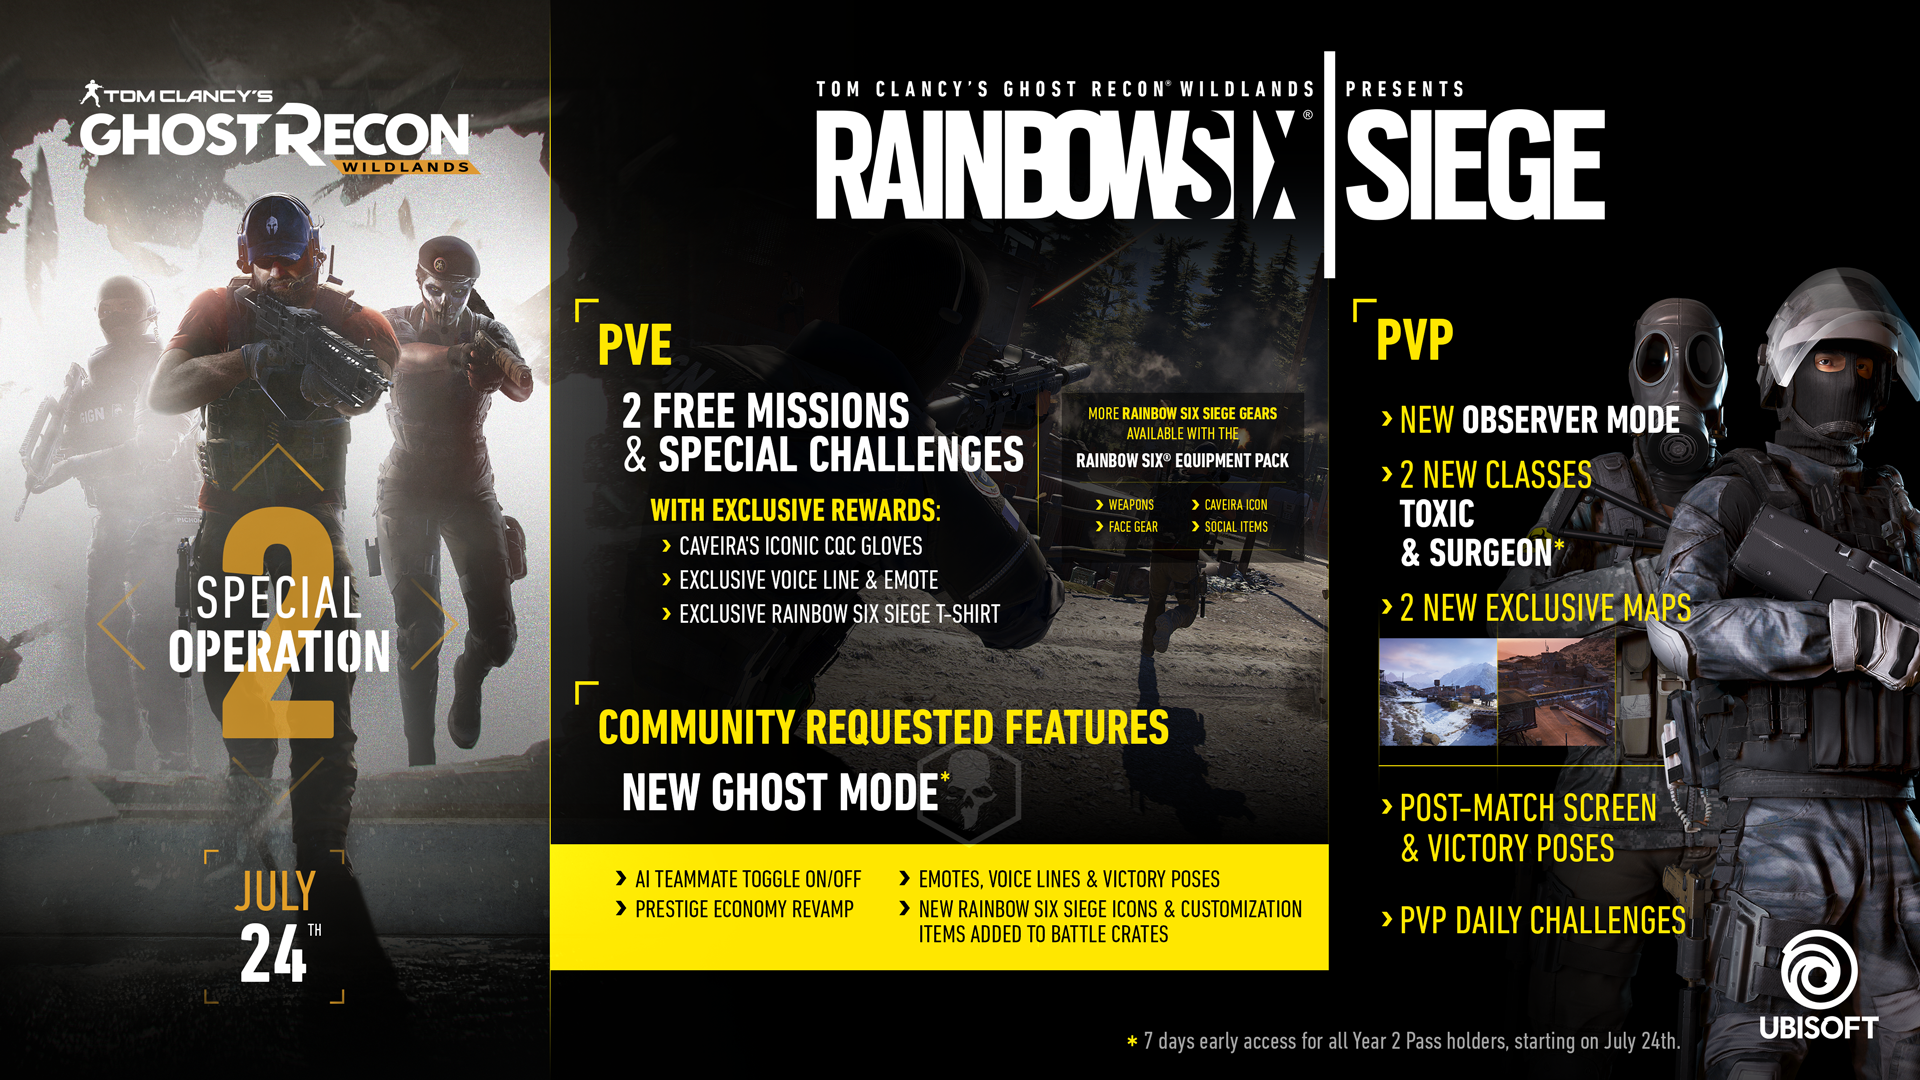 Ghost Recon Wildlands | Rainbow Six Siege Character ... |Ghost Recon Rainbow Six